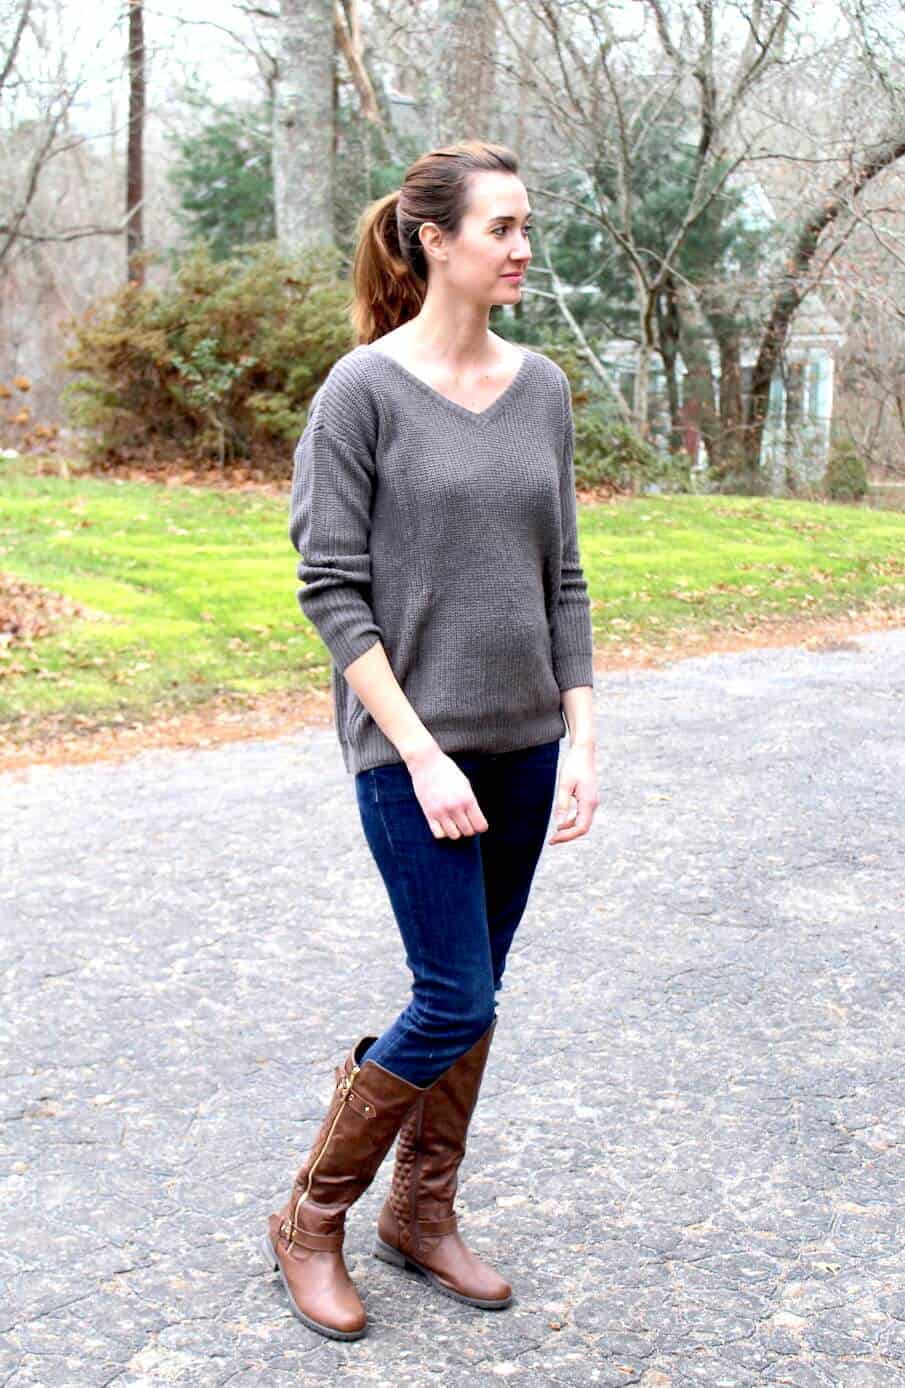 Oversized sweaters are everywhere, and are great for accomodating or hiding the first trimester bump #maternityoutfit #pregnancyfashion